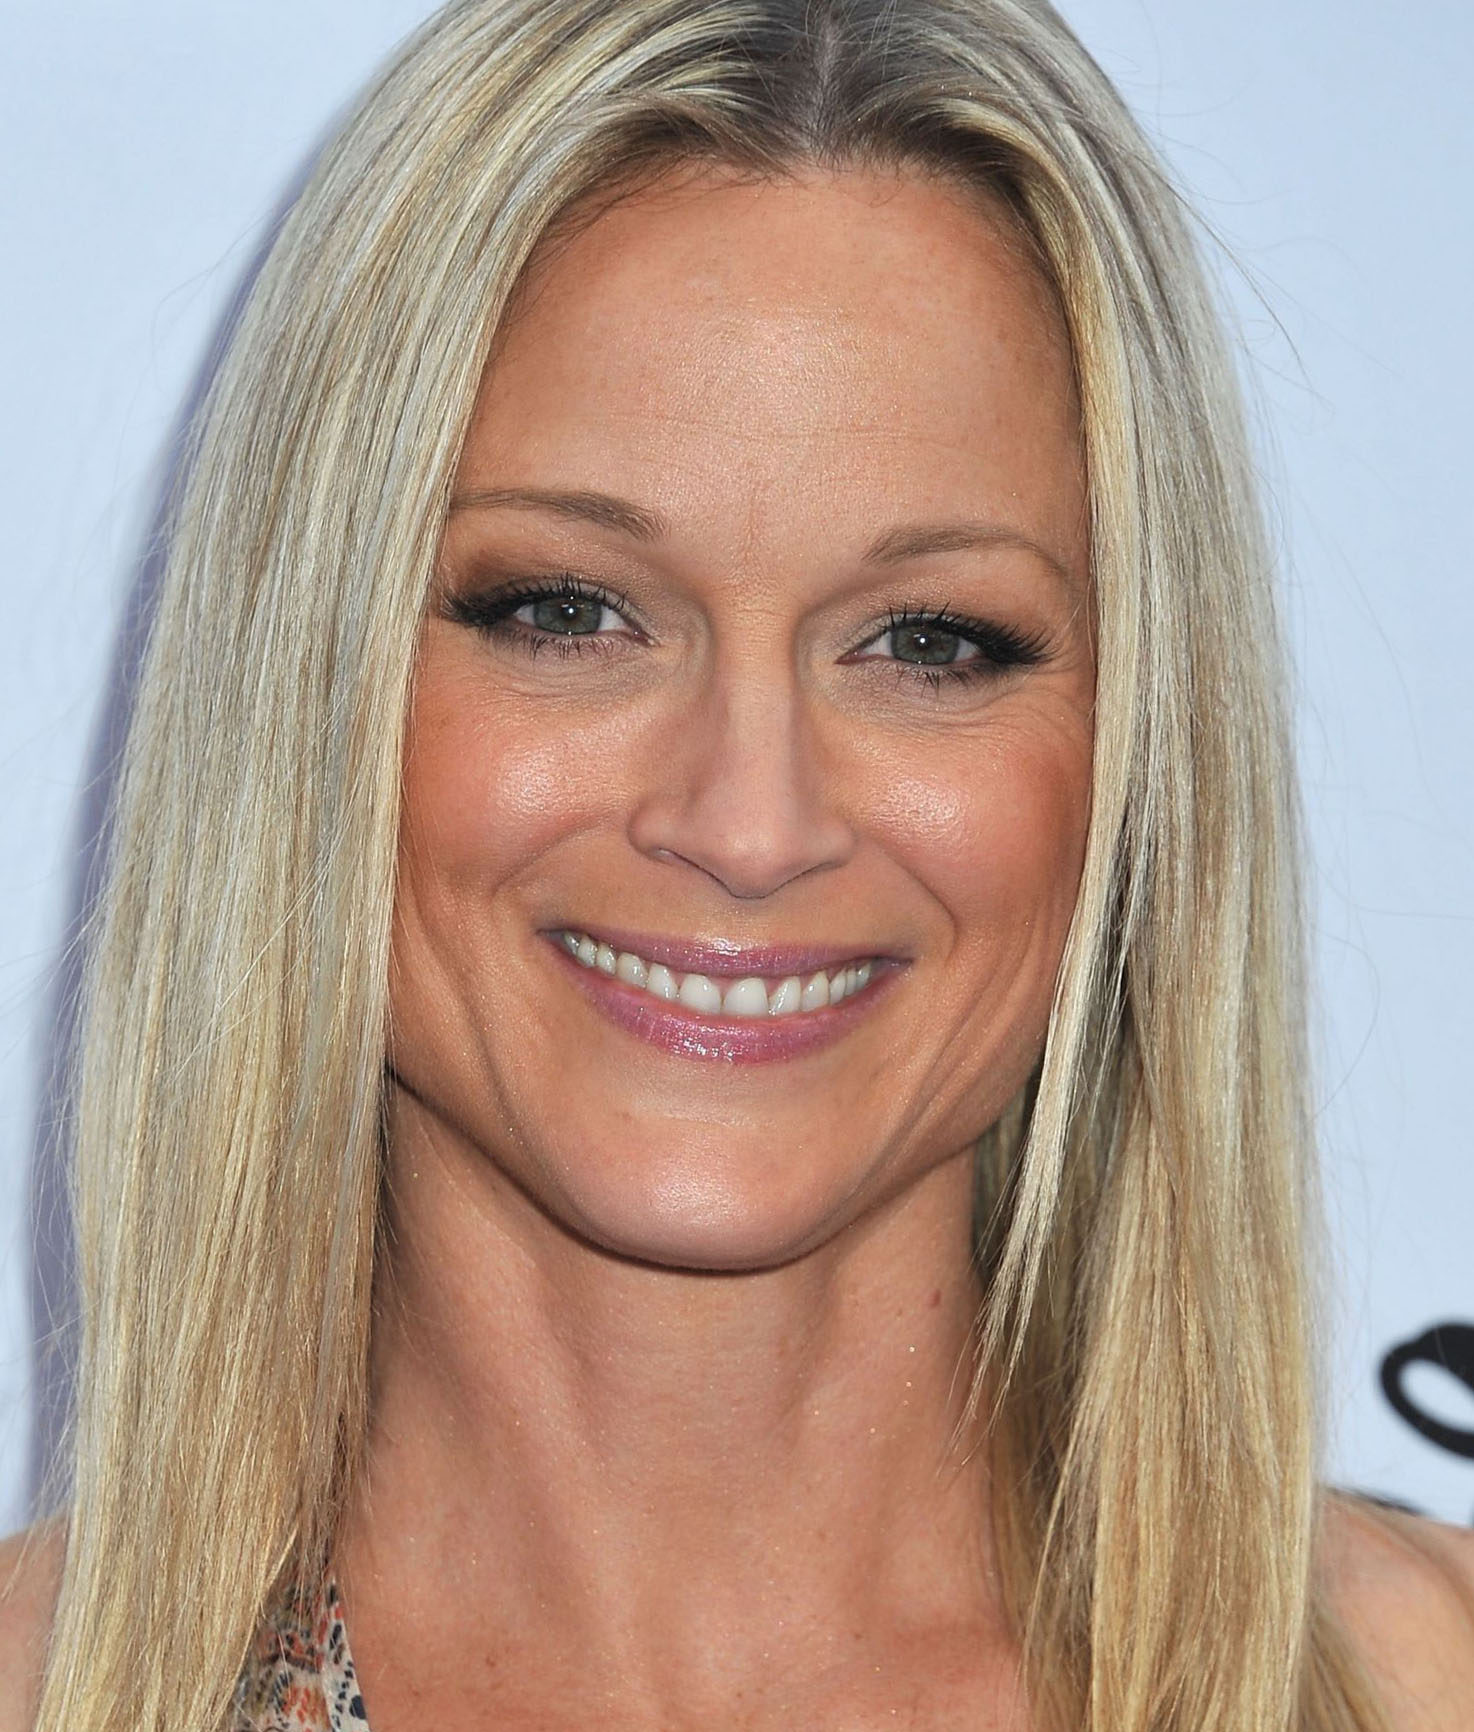 SPITTER! Teri Polo Naked Leaked Photos